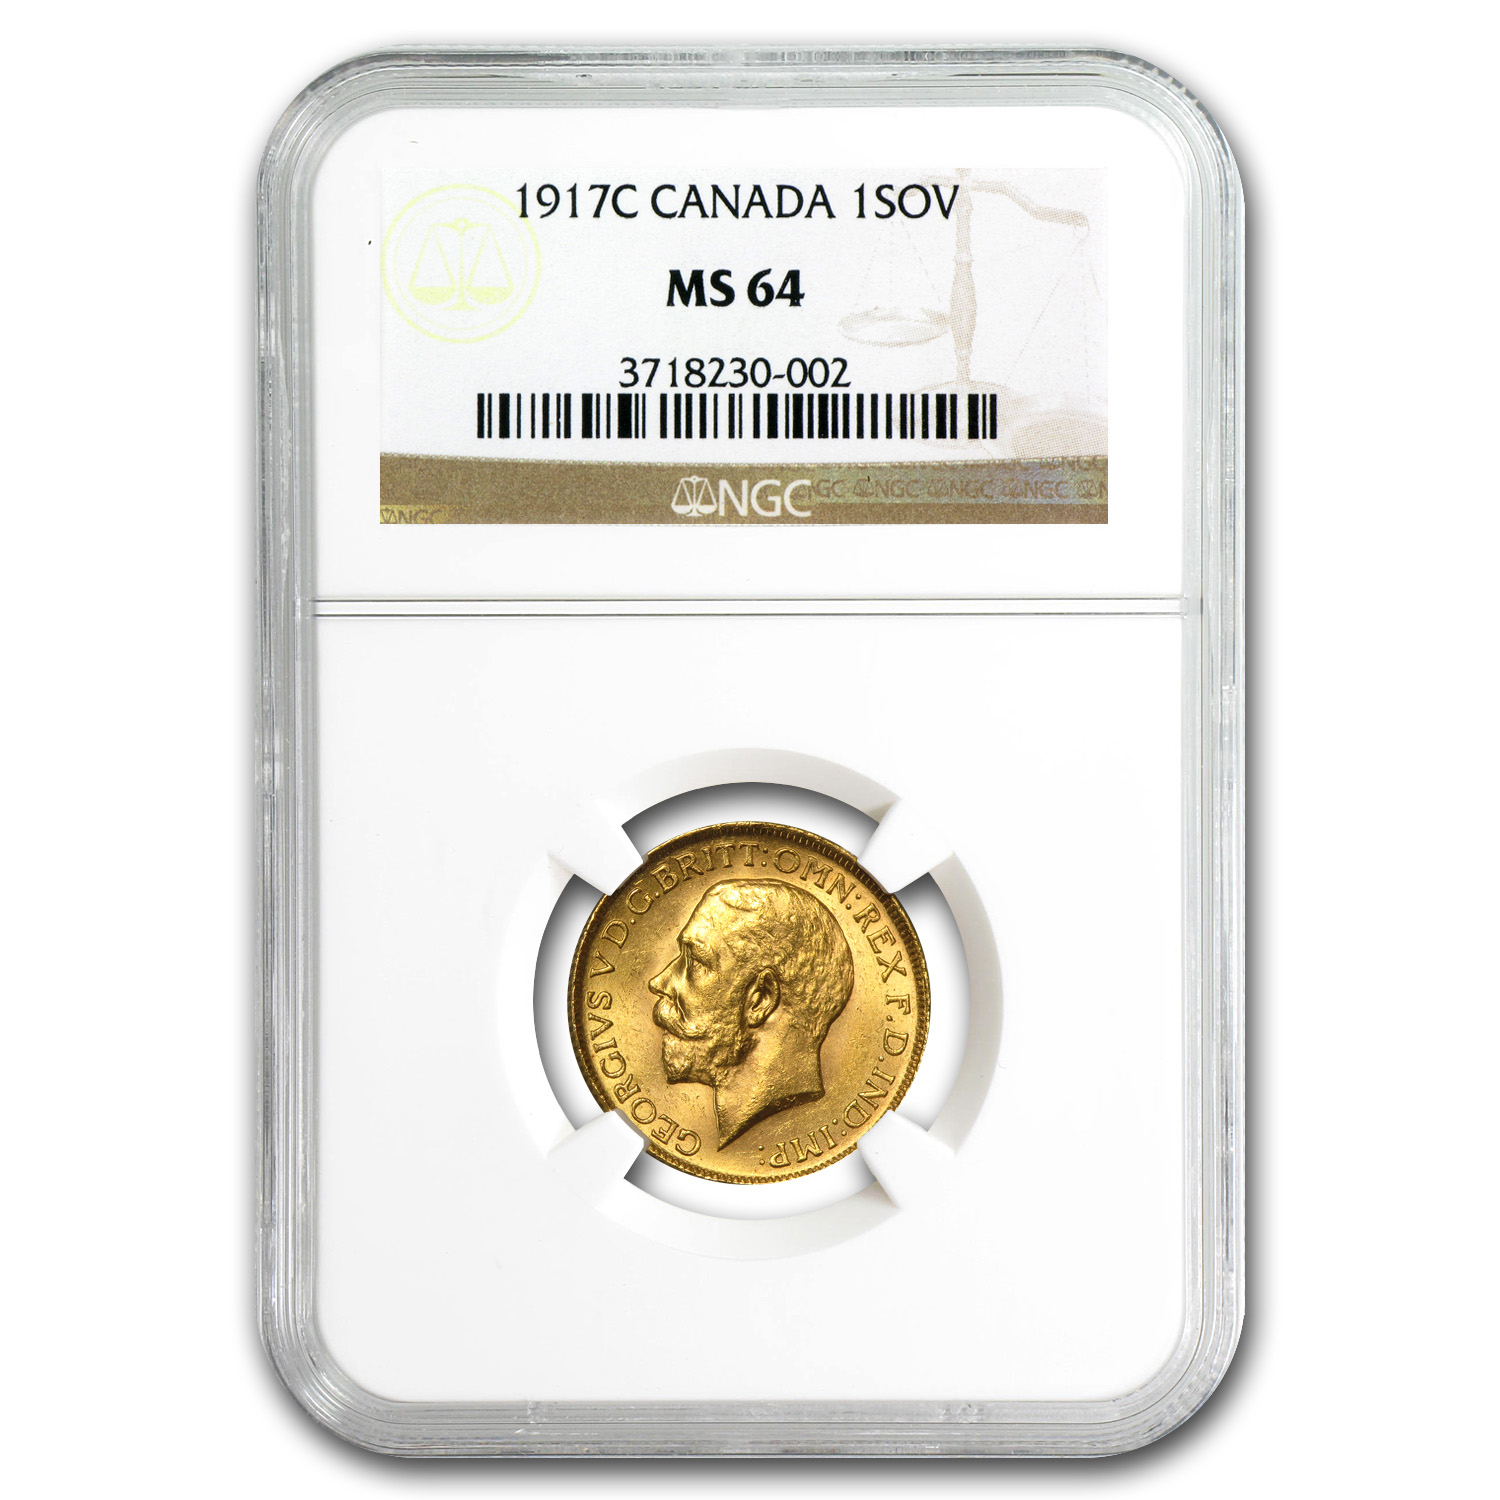 Canada 1917-C Sovereign Gold George V MS-64 NGC